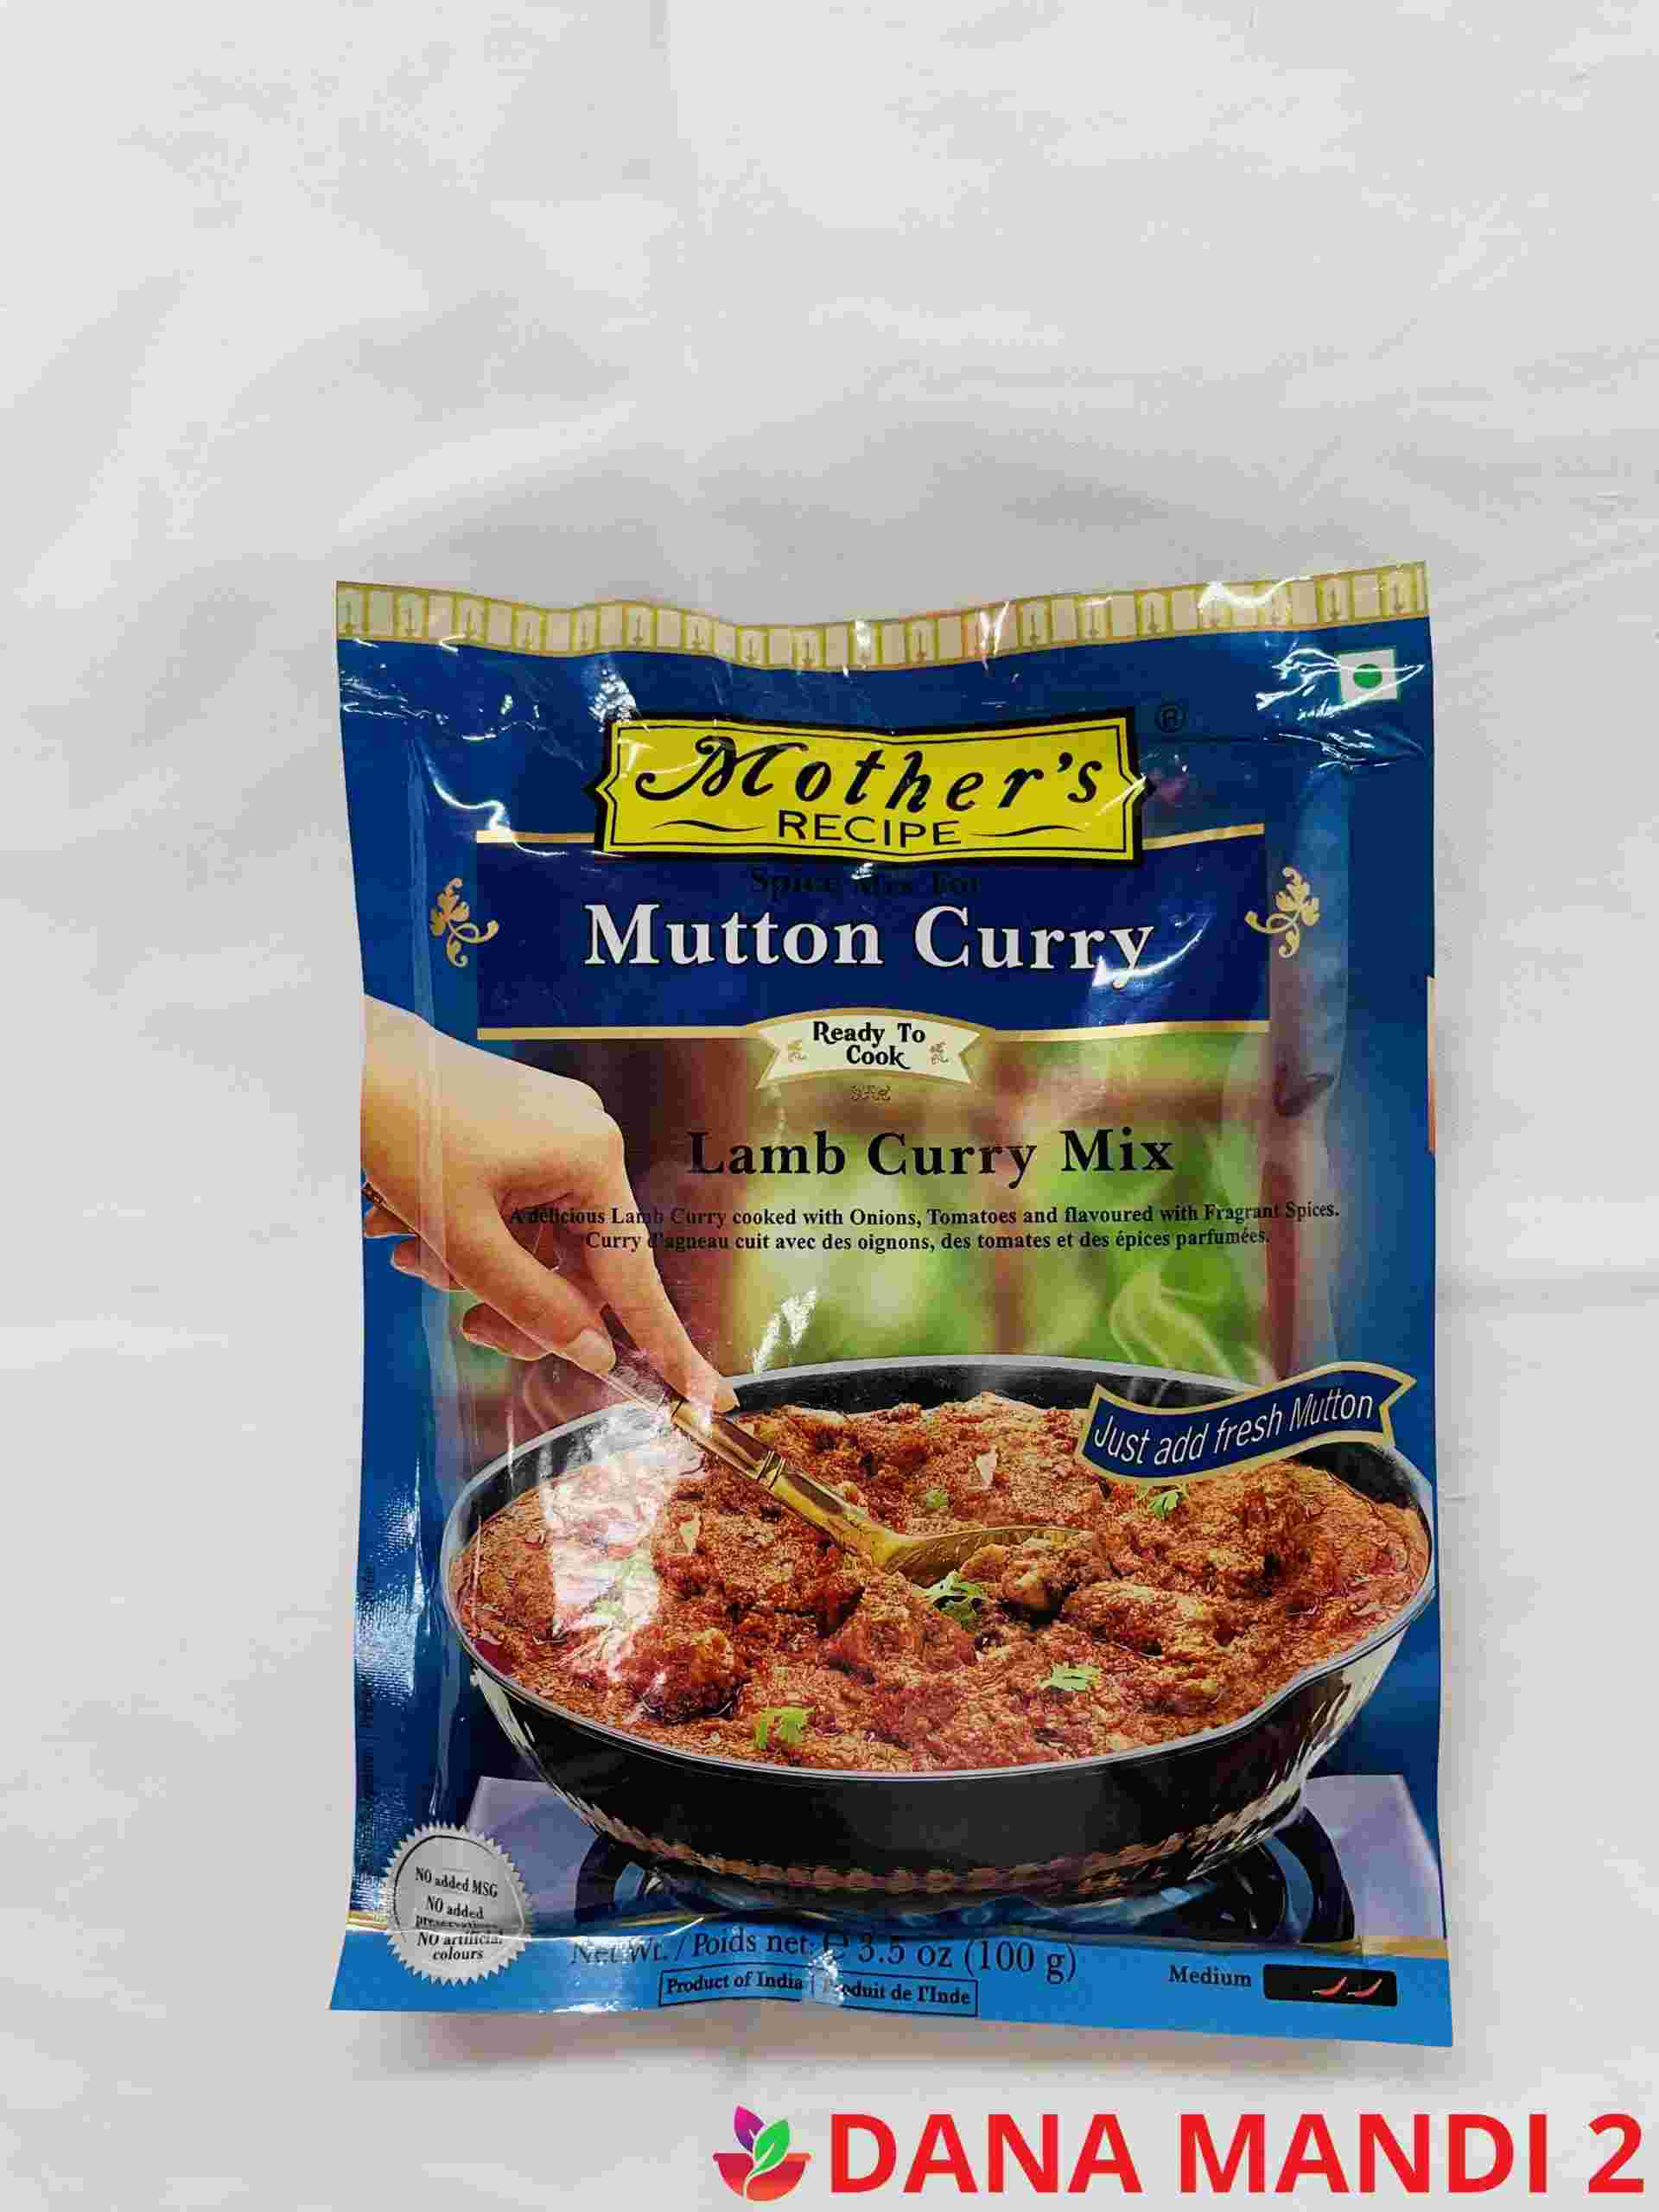 Mother's Spice Mix For Mutton Curry